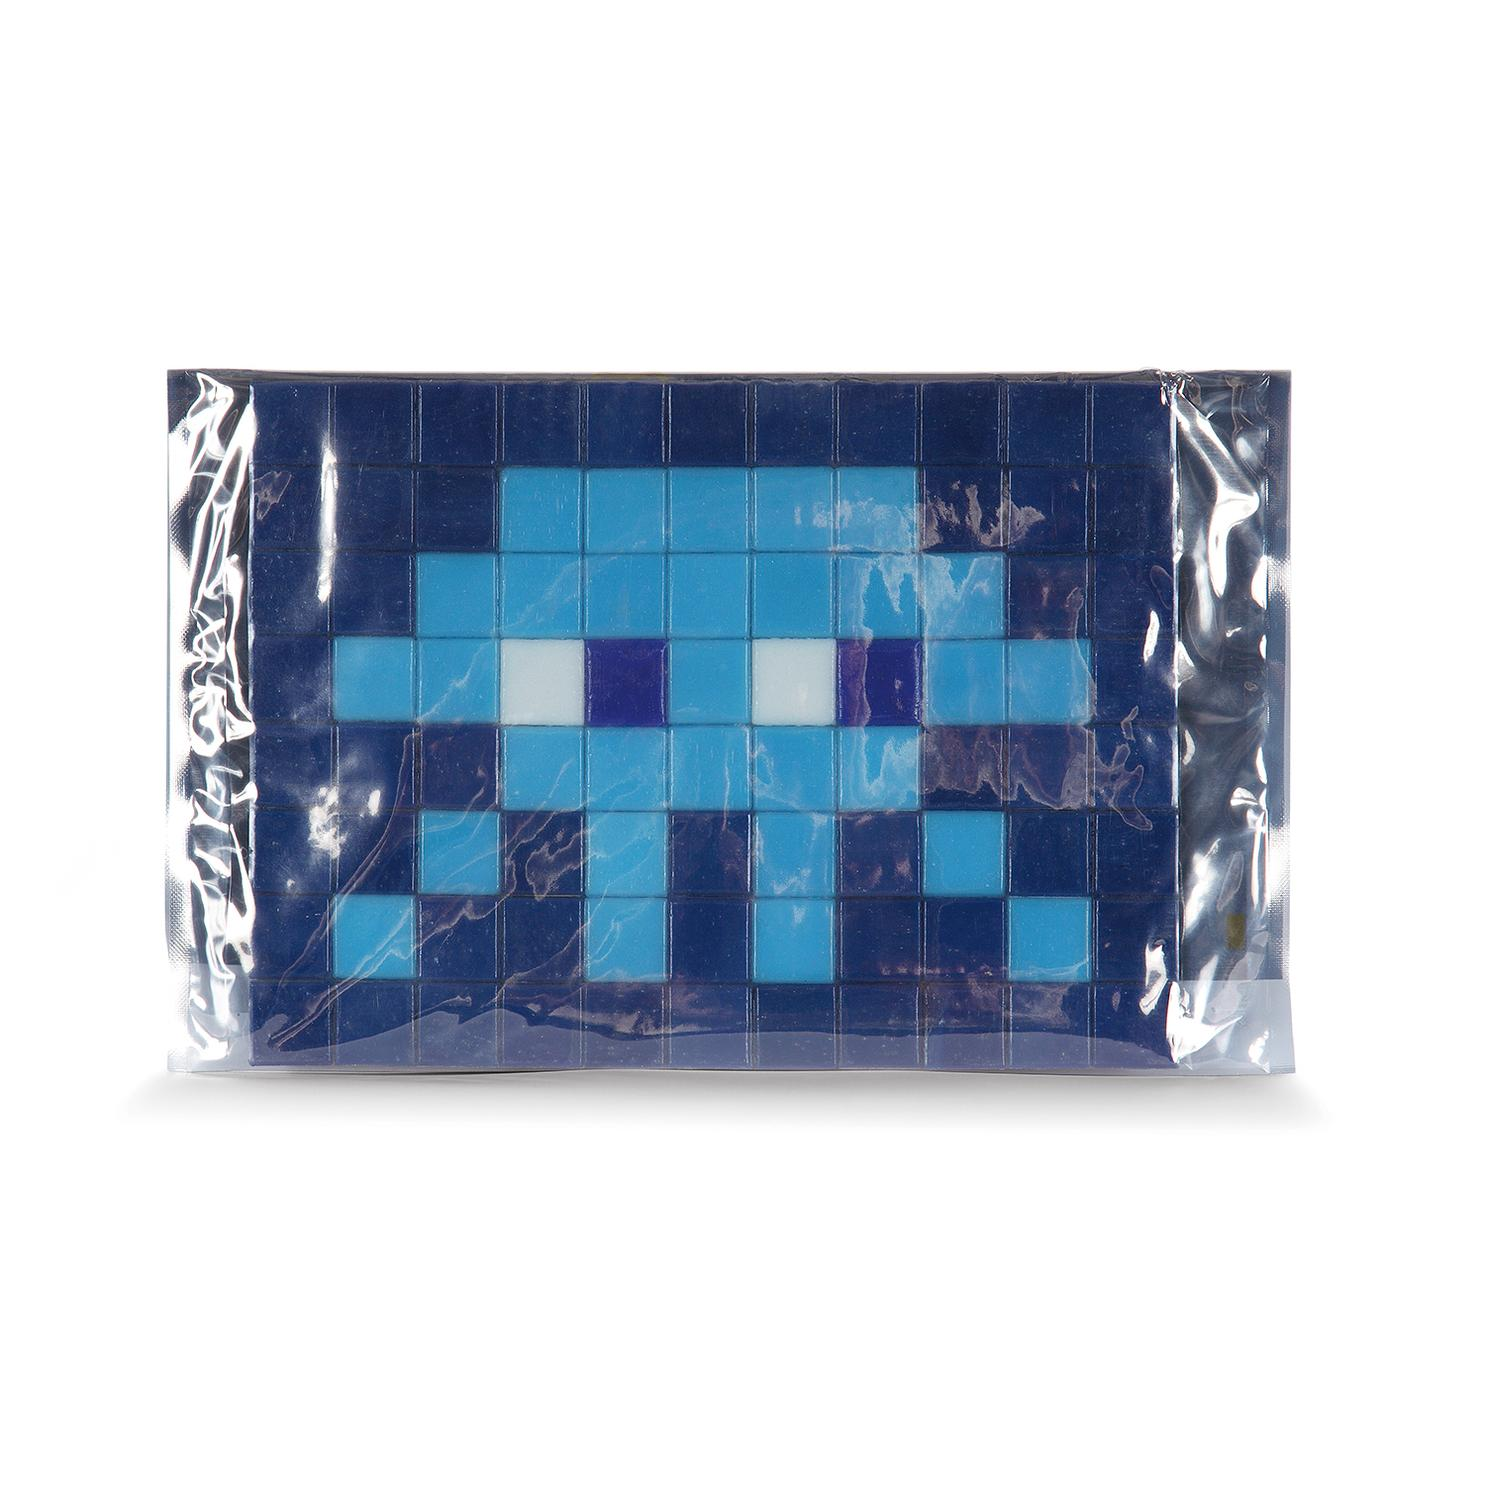 Invader-Invasion Kit 11, Blue-2009